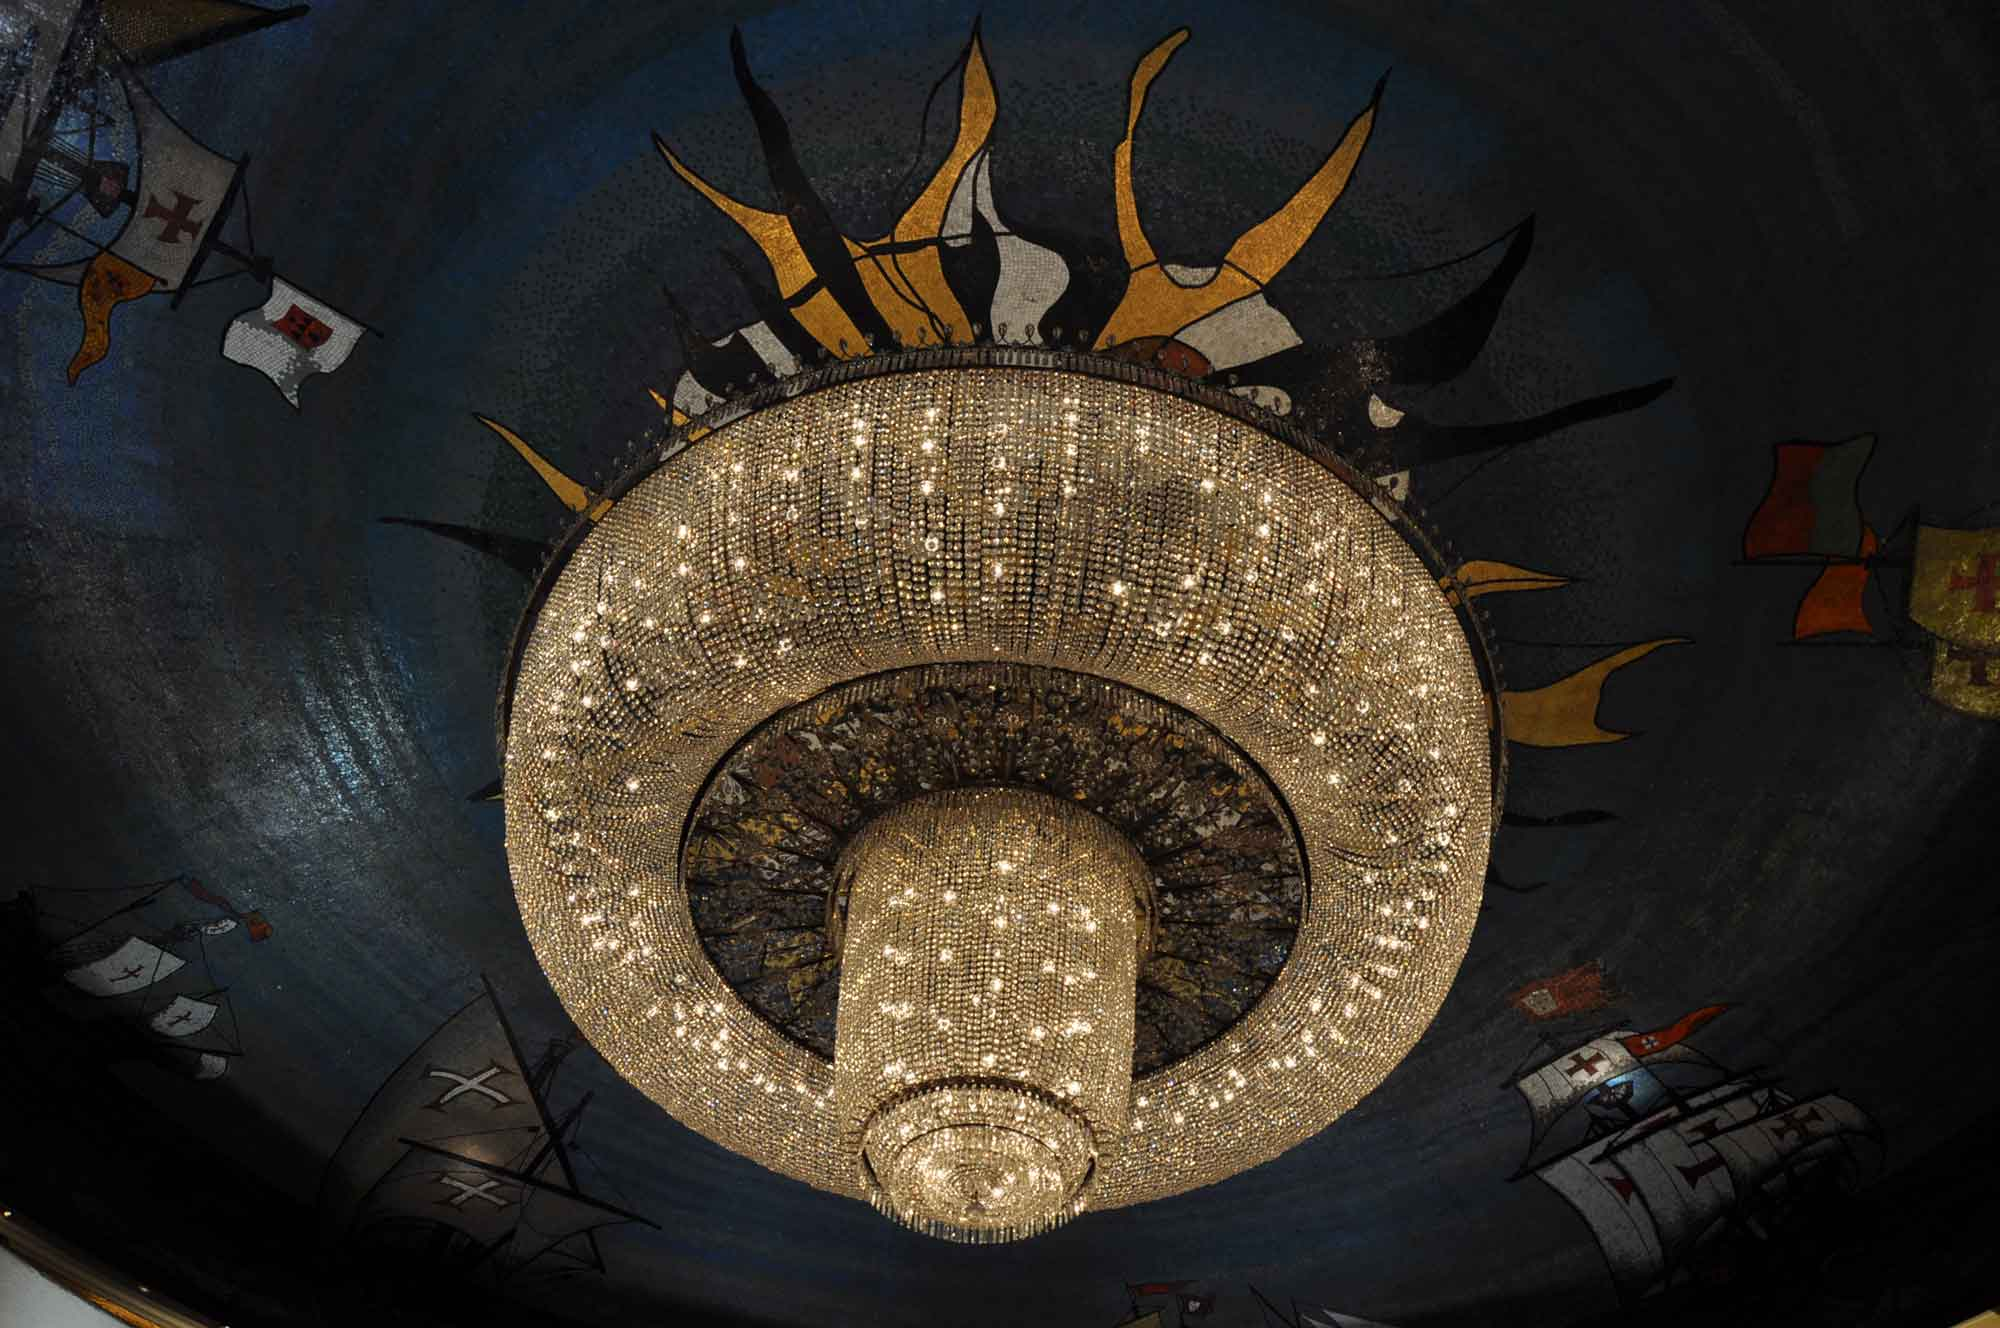 Hotel Lisboa chandelier with boats